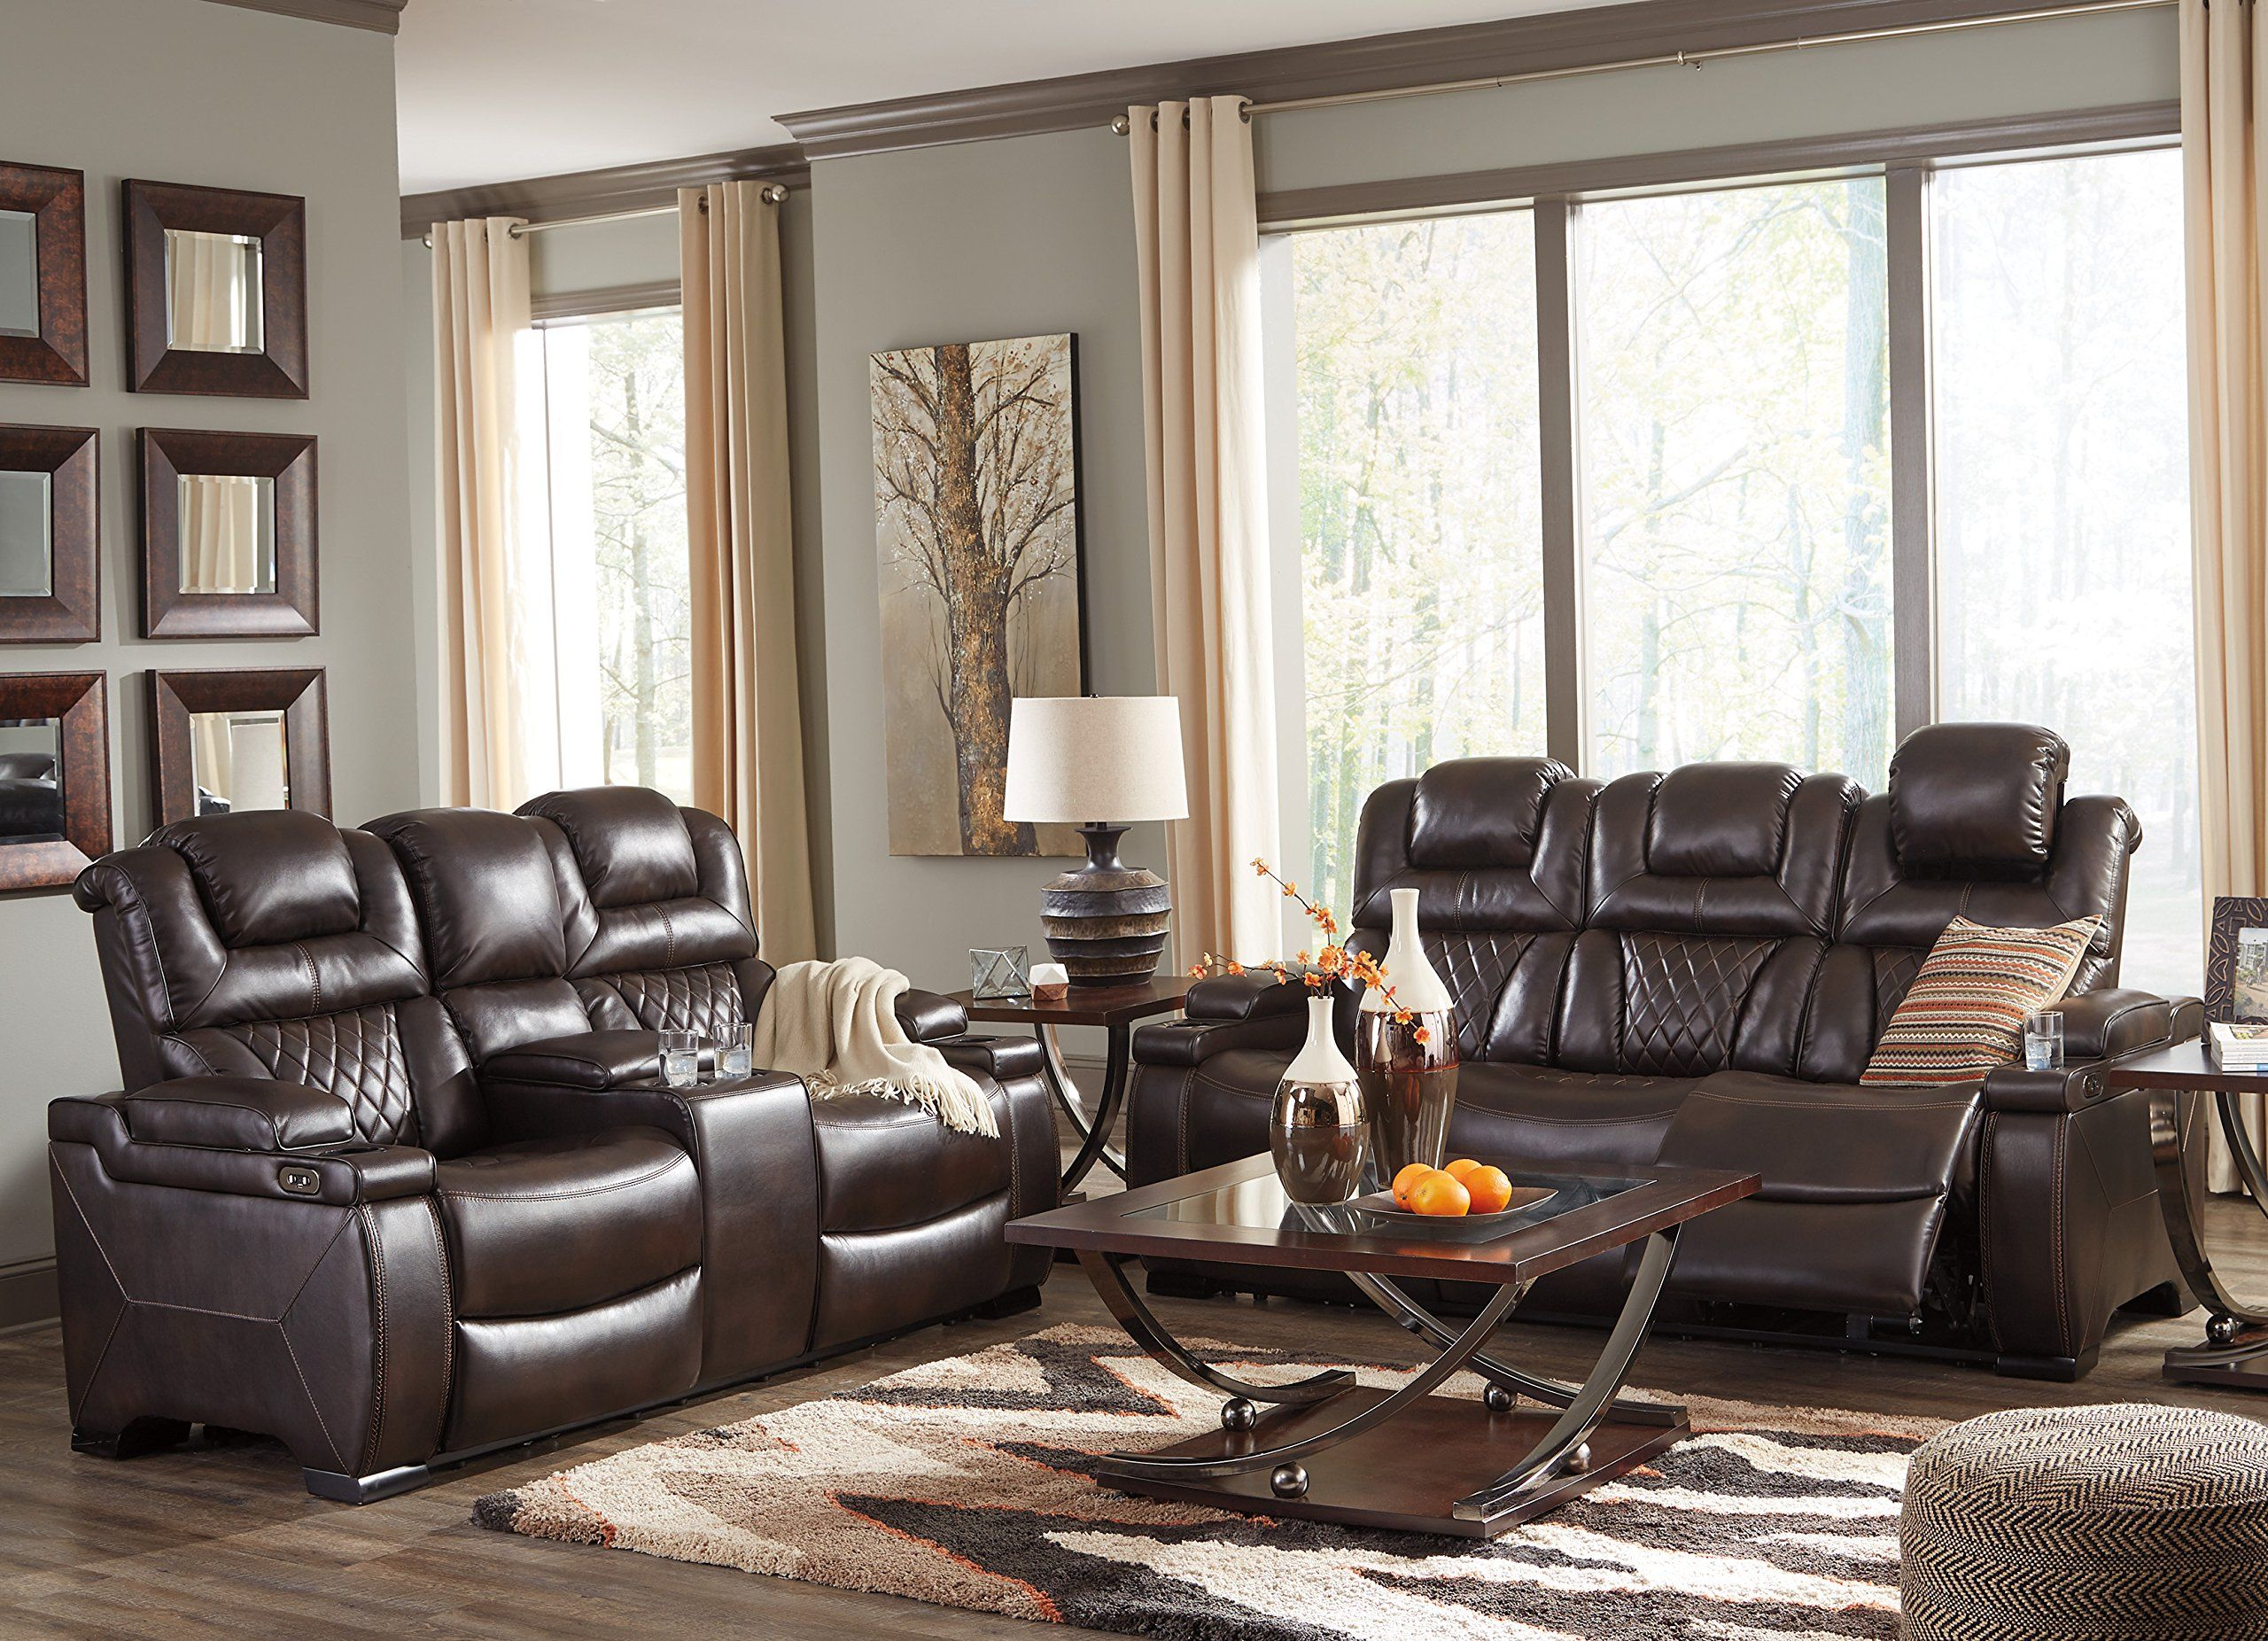 Warnerton Contemporary Chocolate Color Pu Leather Power Reclining Sofa Loveseat With Adjustable Headr Living Room Sets Loveseat Living Room Living Room Leather #warnerton #chocolate #power #reclining #living #room #set